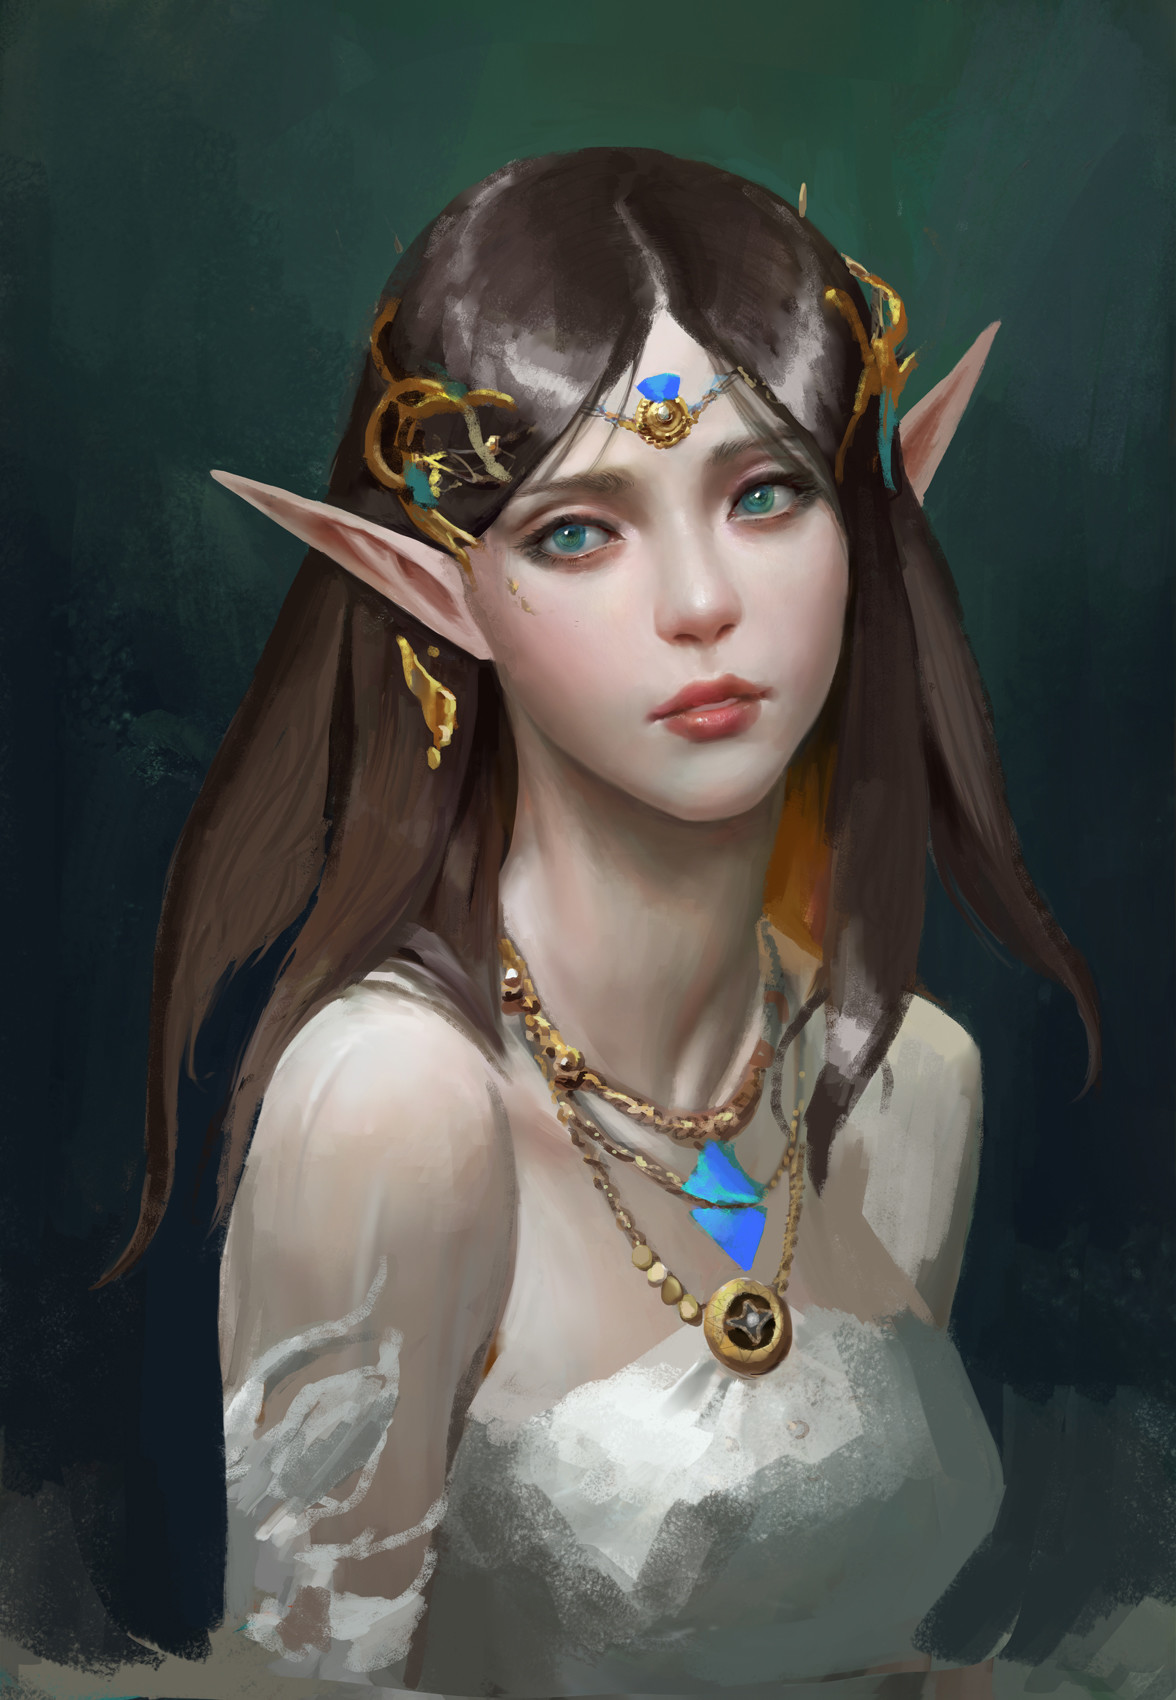 Artstation - The Song Of The Wood Elves, Anima 08-5819